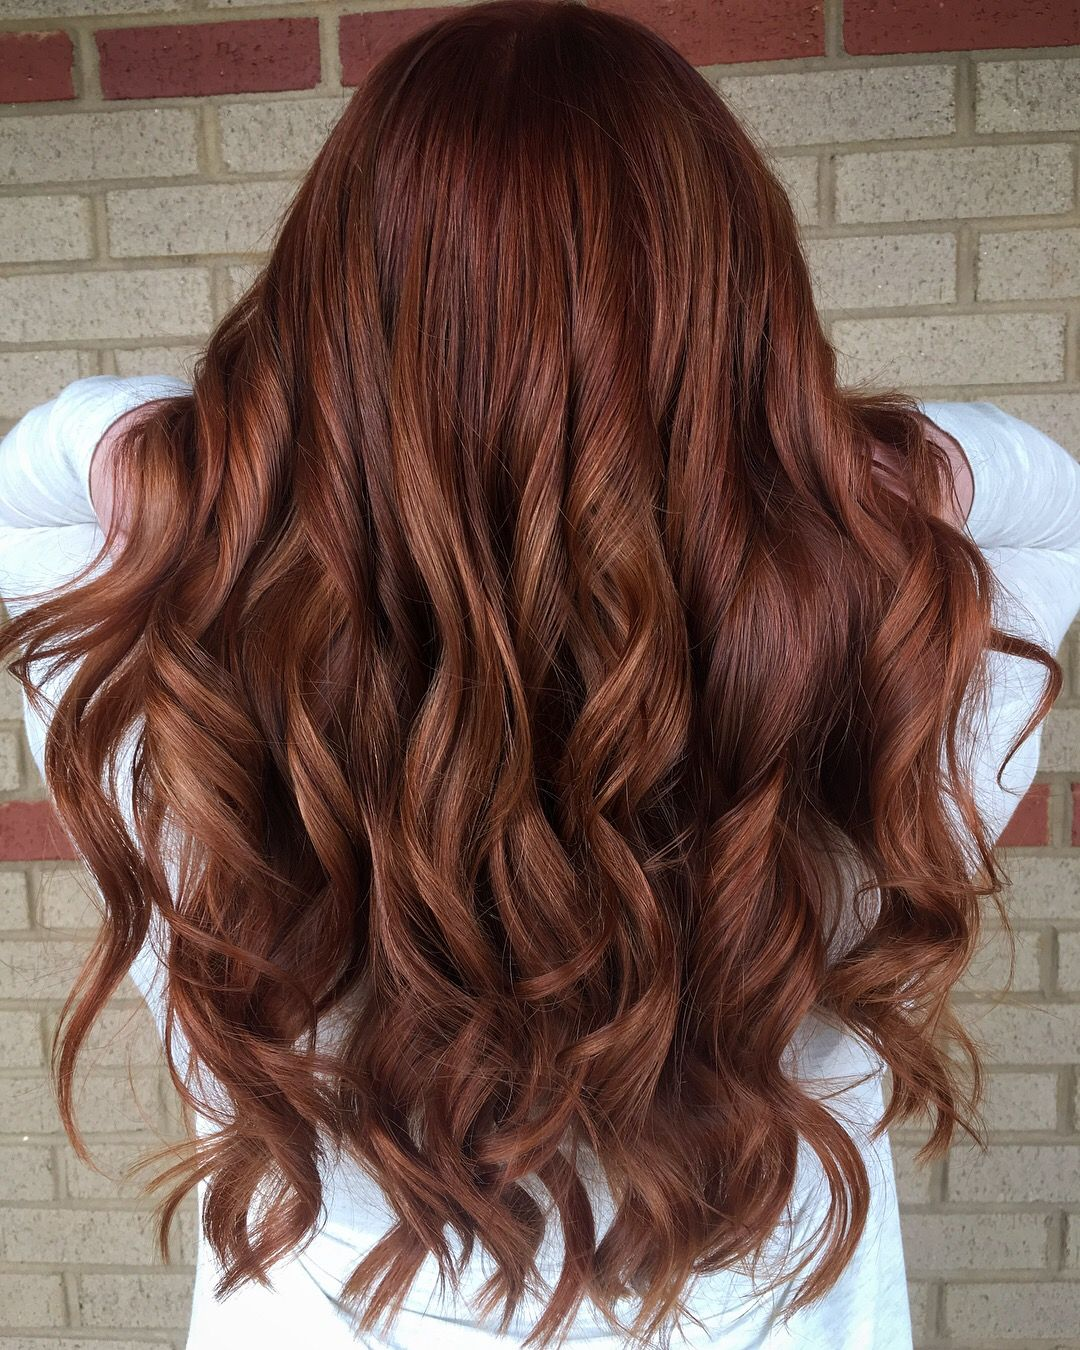 Wella Red Jessqhair Hair Color Auburn Hair Styles Hair Color Shades